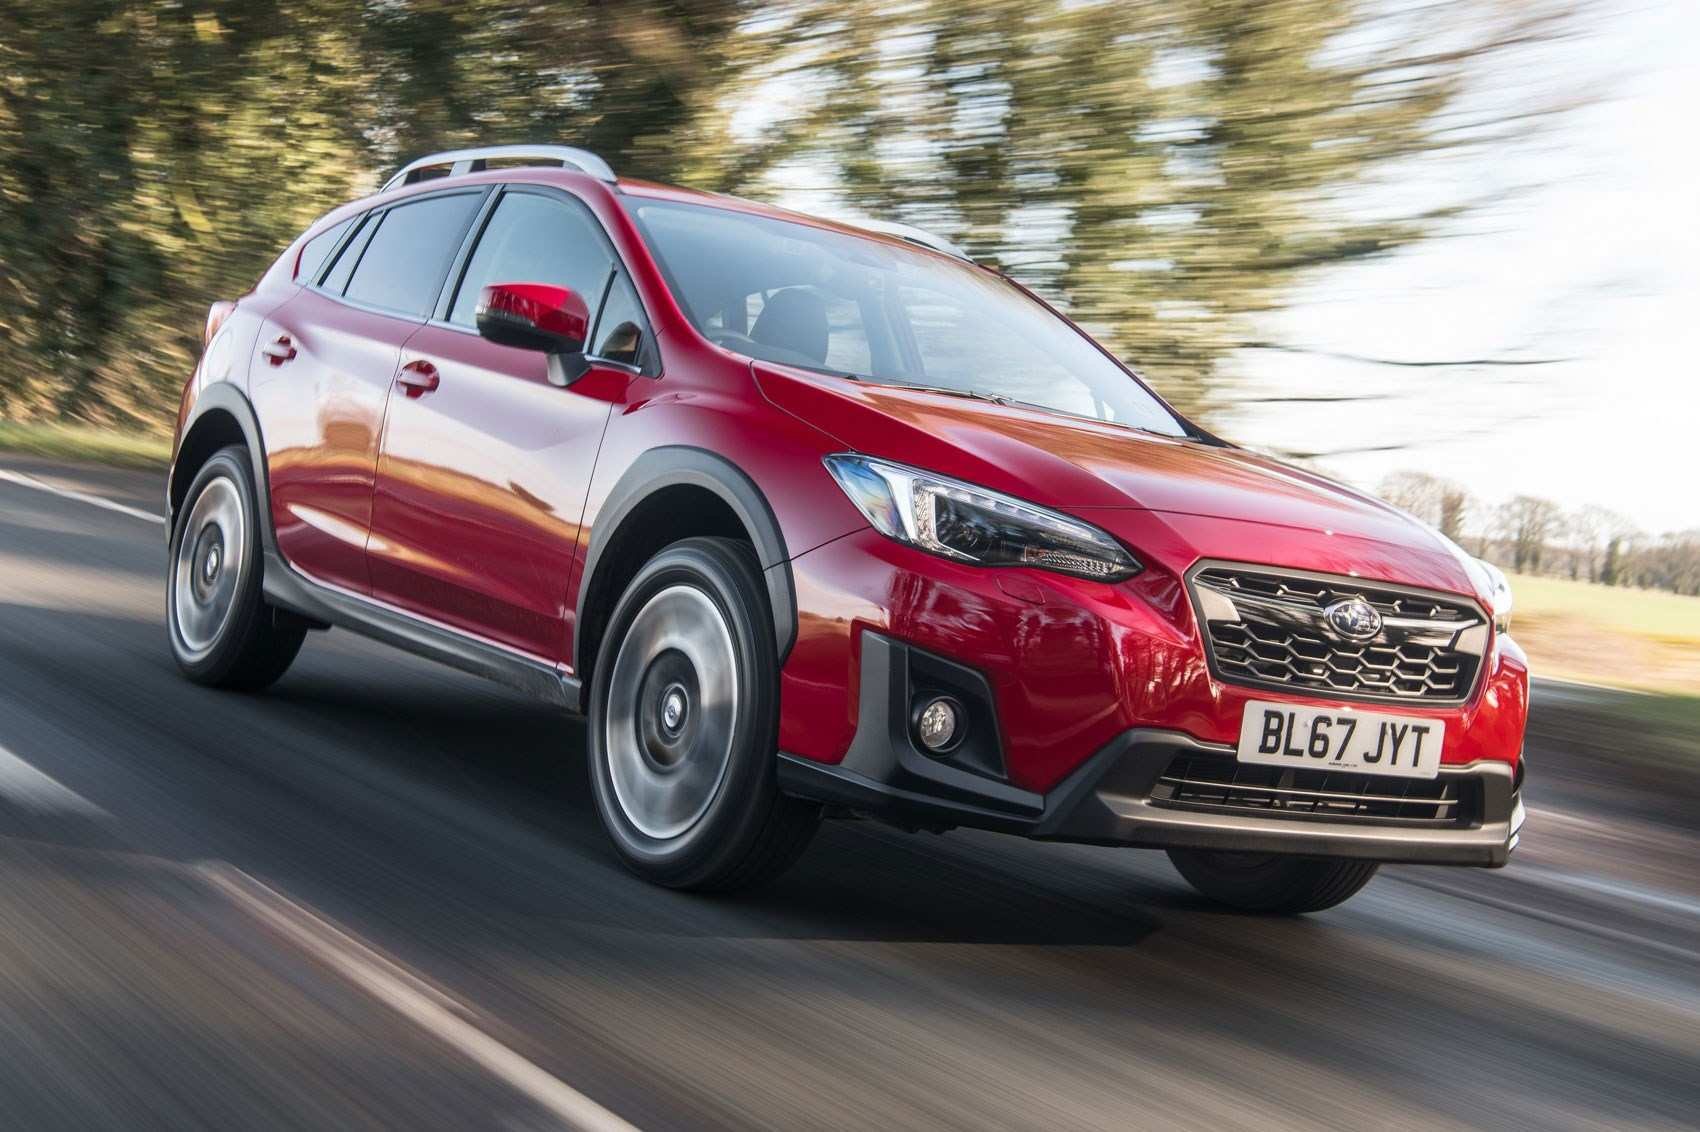 32 The Best Subaru Xv 2019 Price In Egypt Rumors Picture for Best Subaru Xv 2019 Price In Egypt Rumors